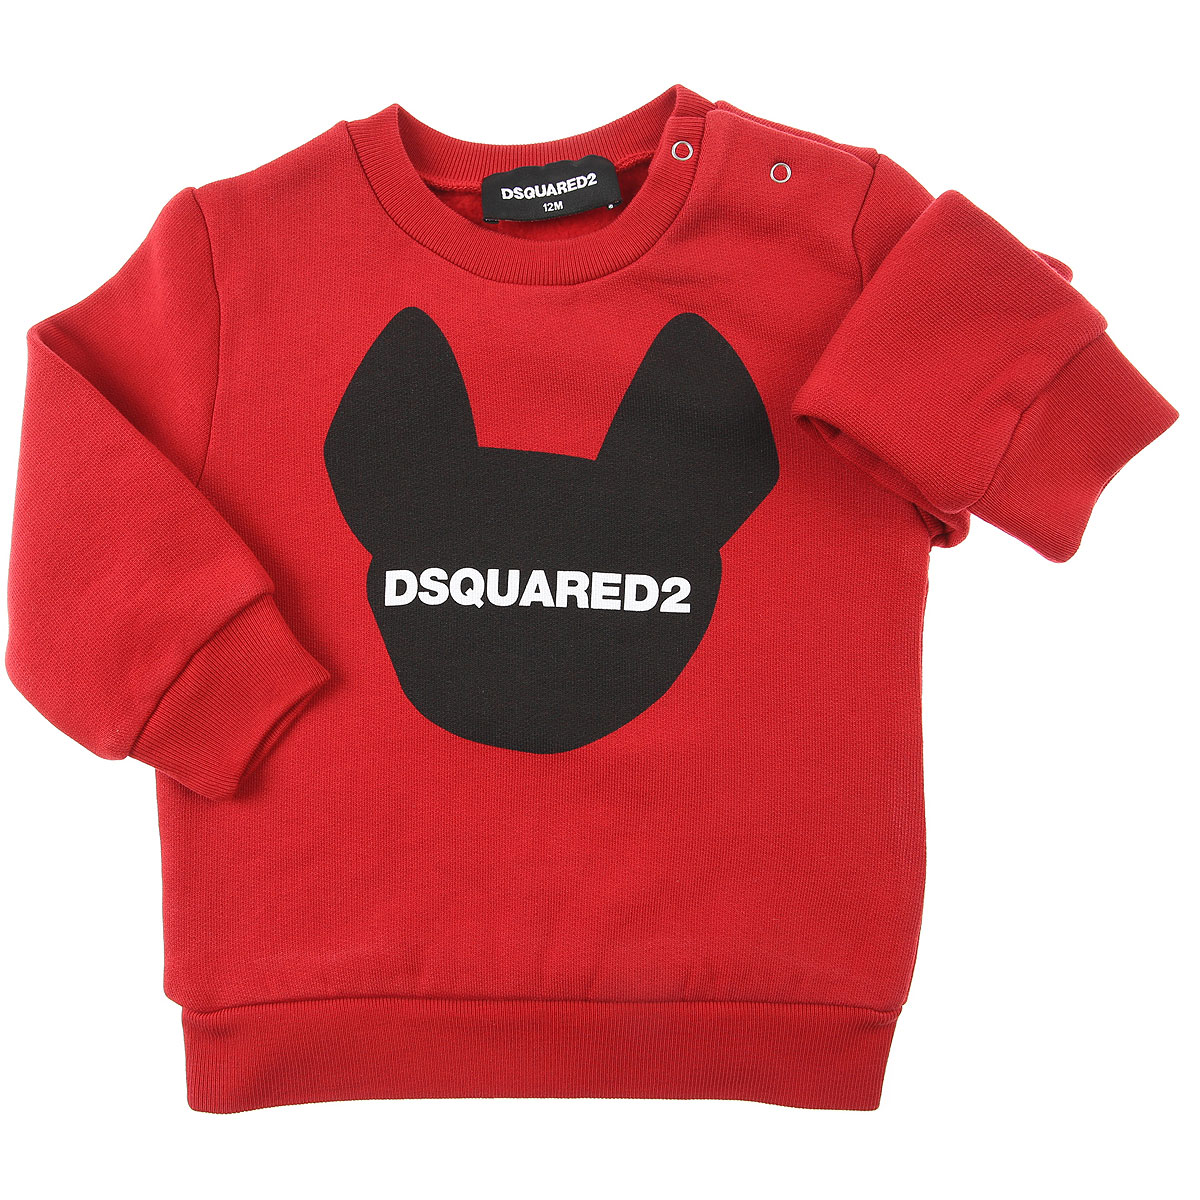 Dsquared2 Baby Sweatshirts & Hoodies for Girls On Sale, Red, Cotton, 2019, 18M 2Y 6M 9M